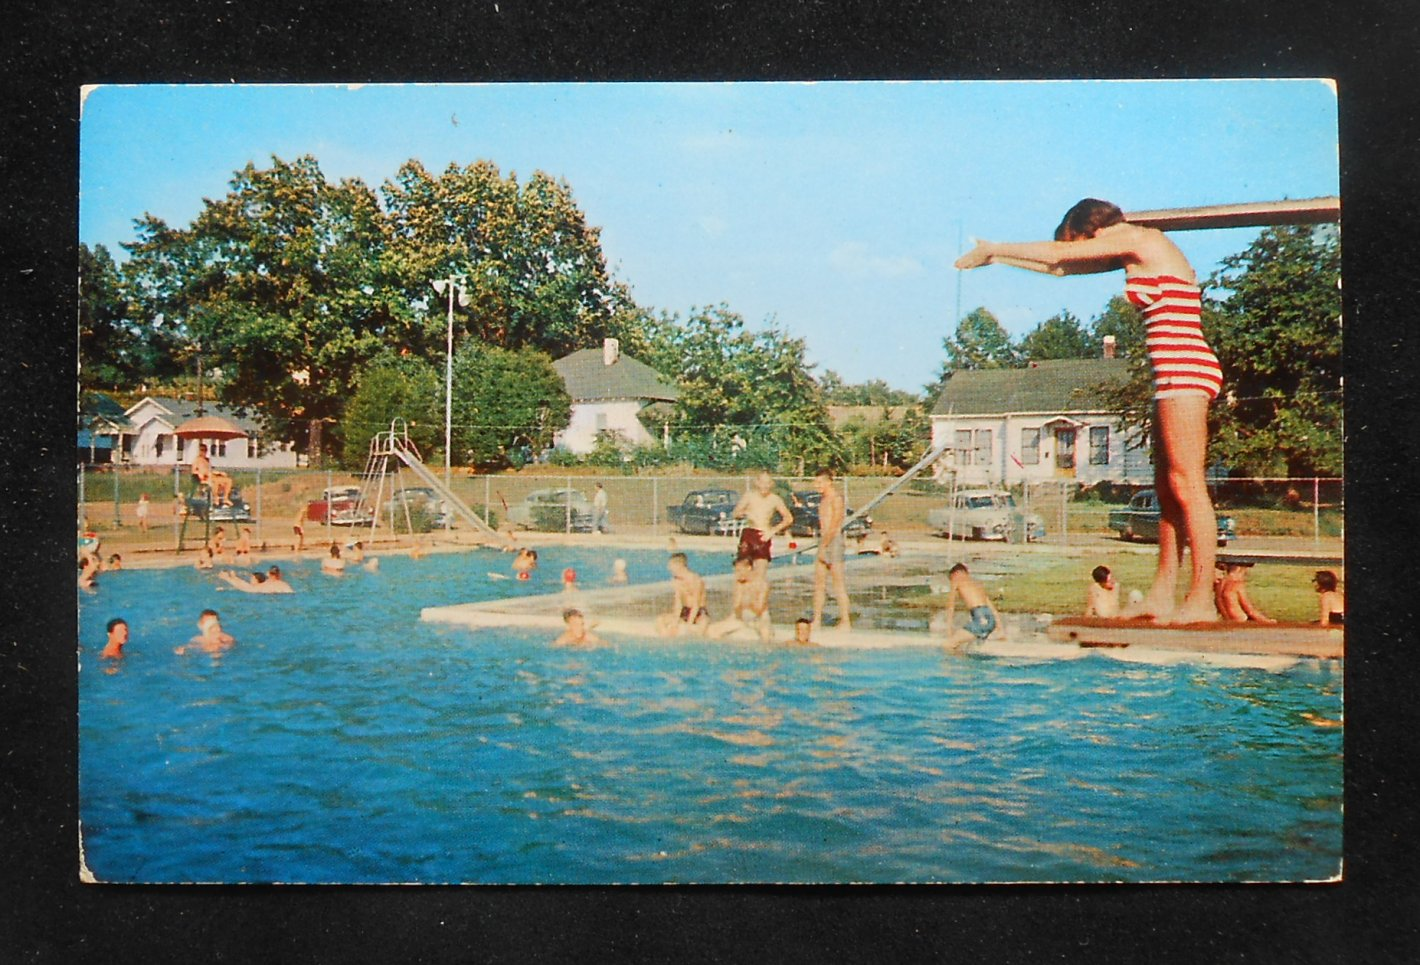 1950s Municipal Swimming Pool City Park Swimsuit Babe Old Cars New Albany Ms Pc